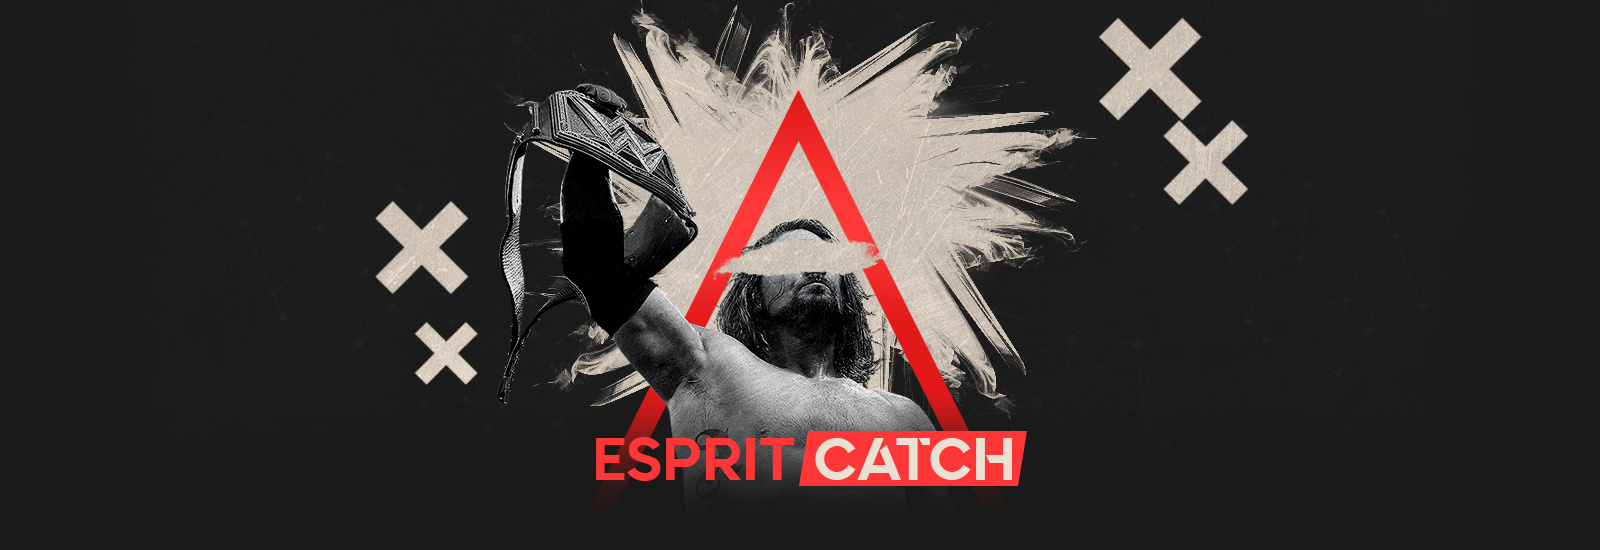 ESPRIT CATCH